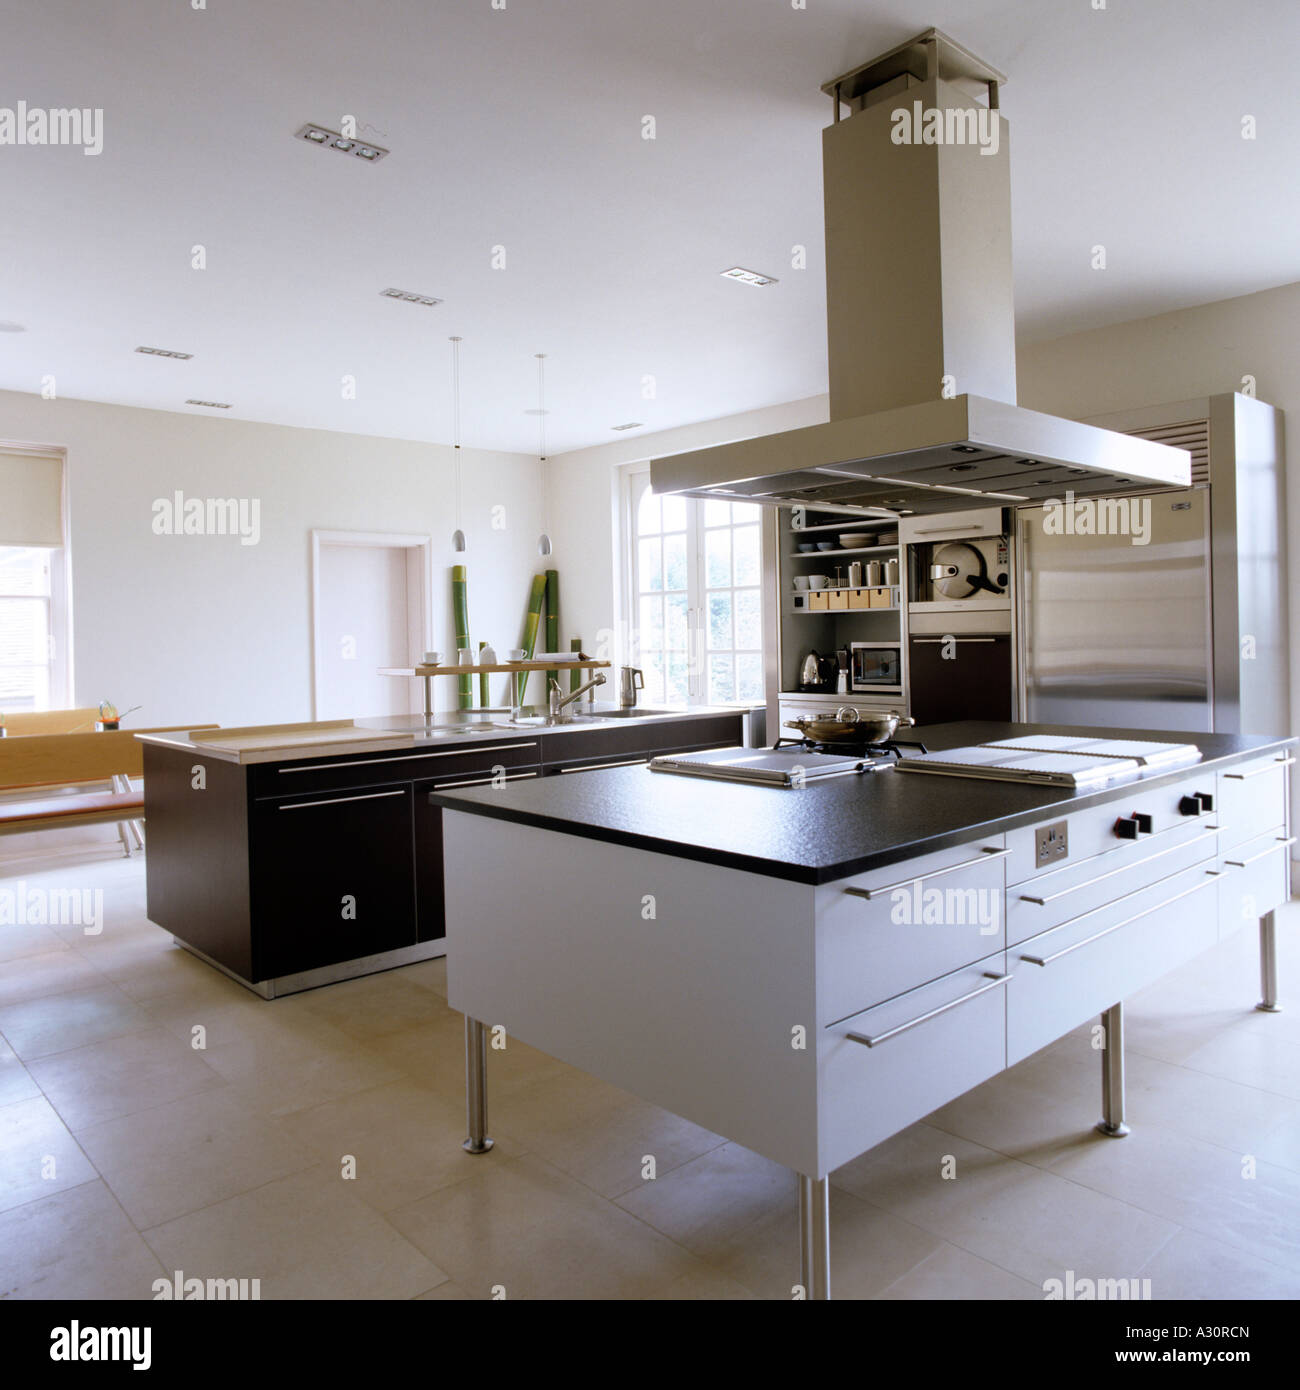 Modern Kitchen Fans Modern Kitchen With Island And Large Extractor Fan Stock